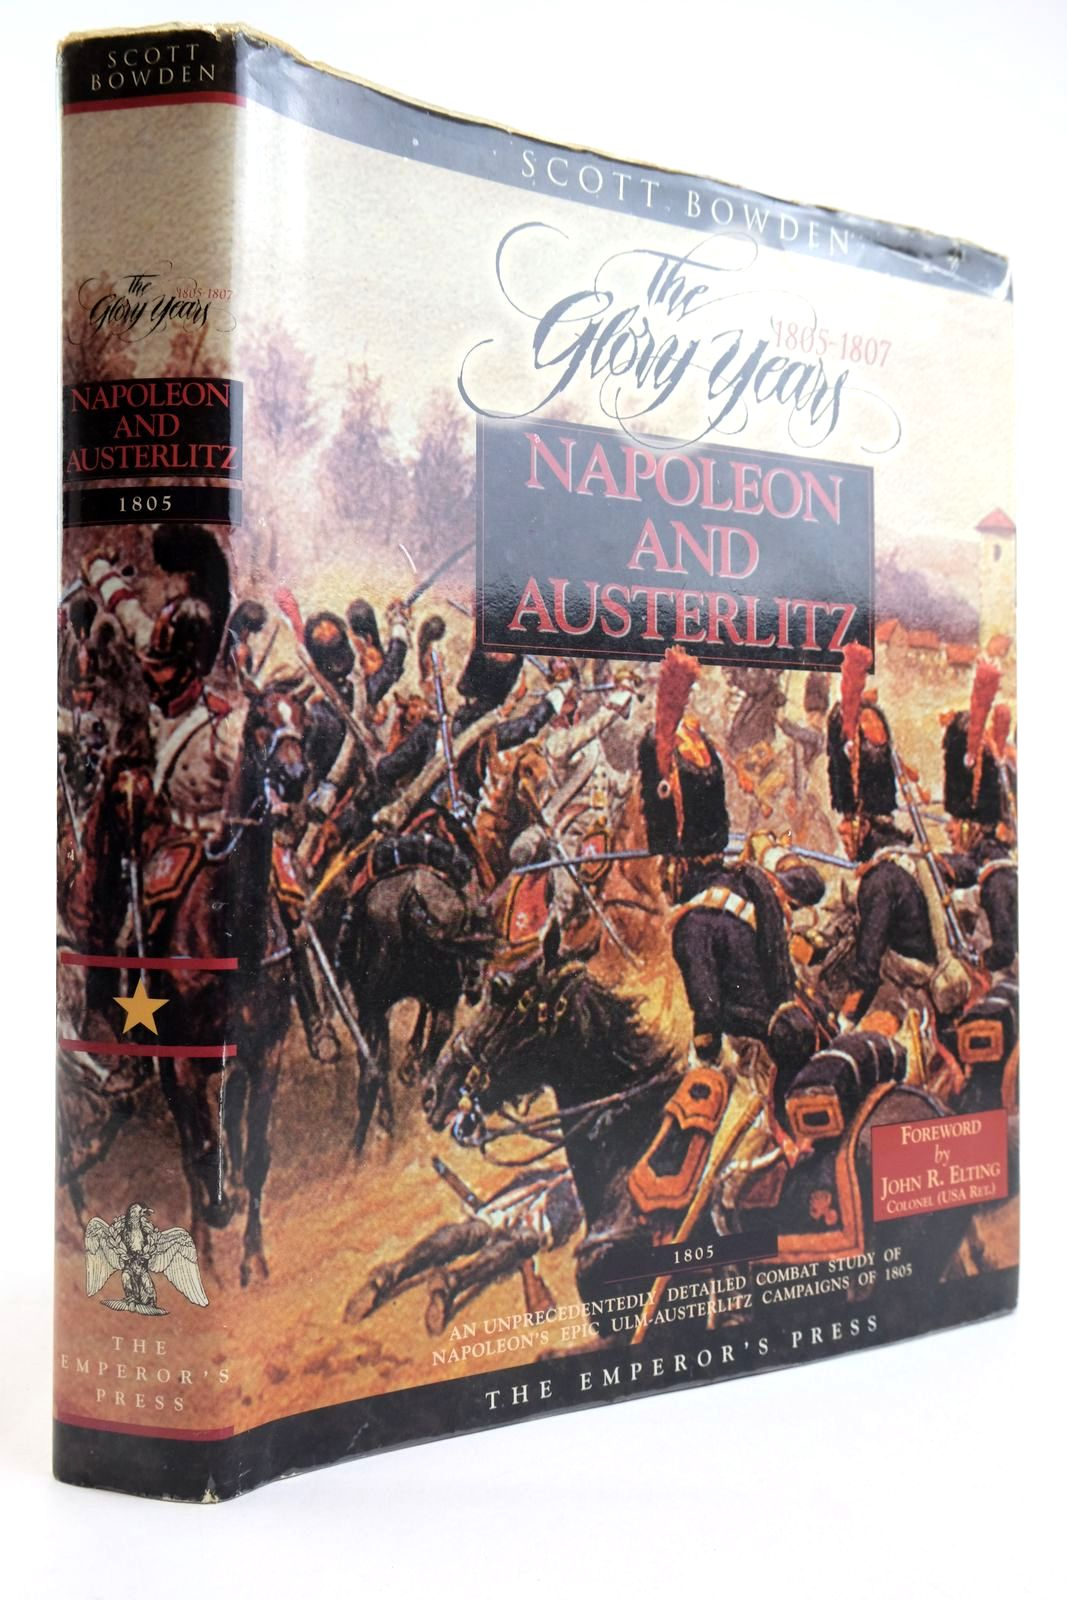 """Photo of """"THE GLORY YEARS"""" OF 1805-1807 VOLUME 1: NAPOLEON AND AUSTERLITZ written by Bowden, Scott published by Emperor's Press (STOCK CODE: 2134171)  for sale by Stella & Rose's Books"""